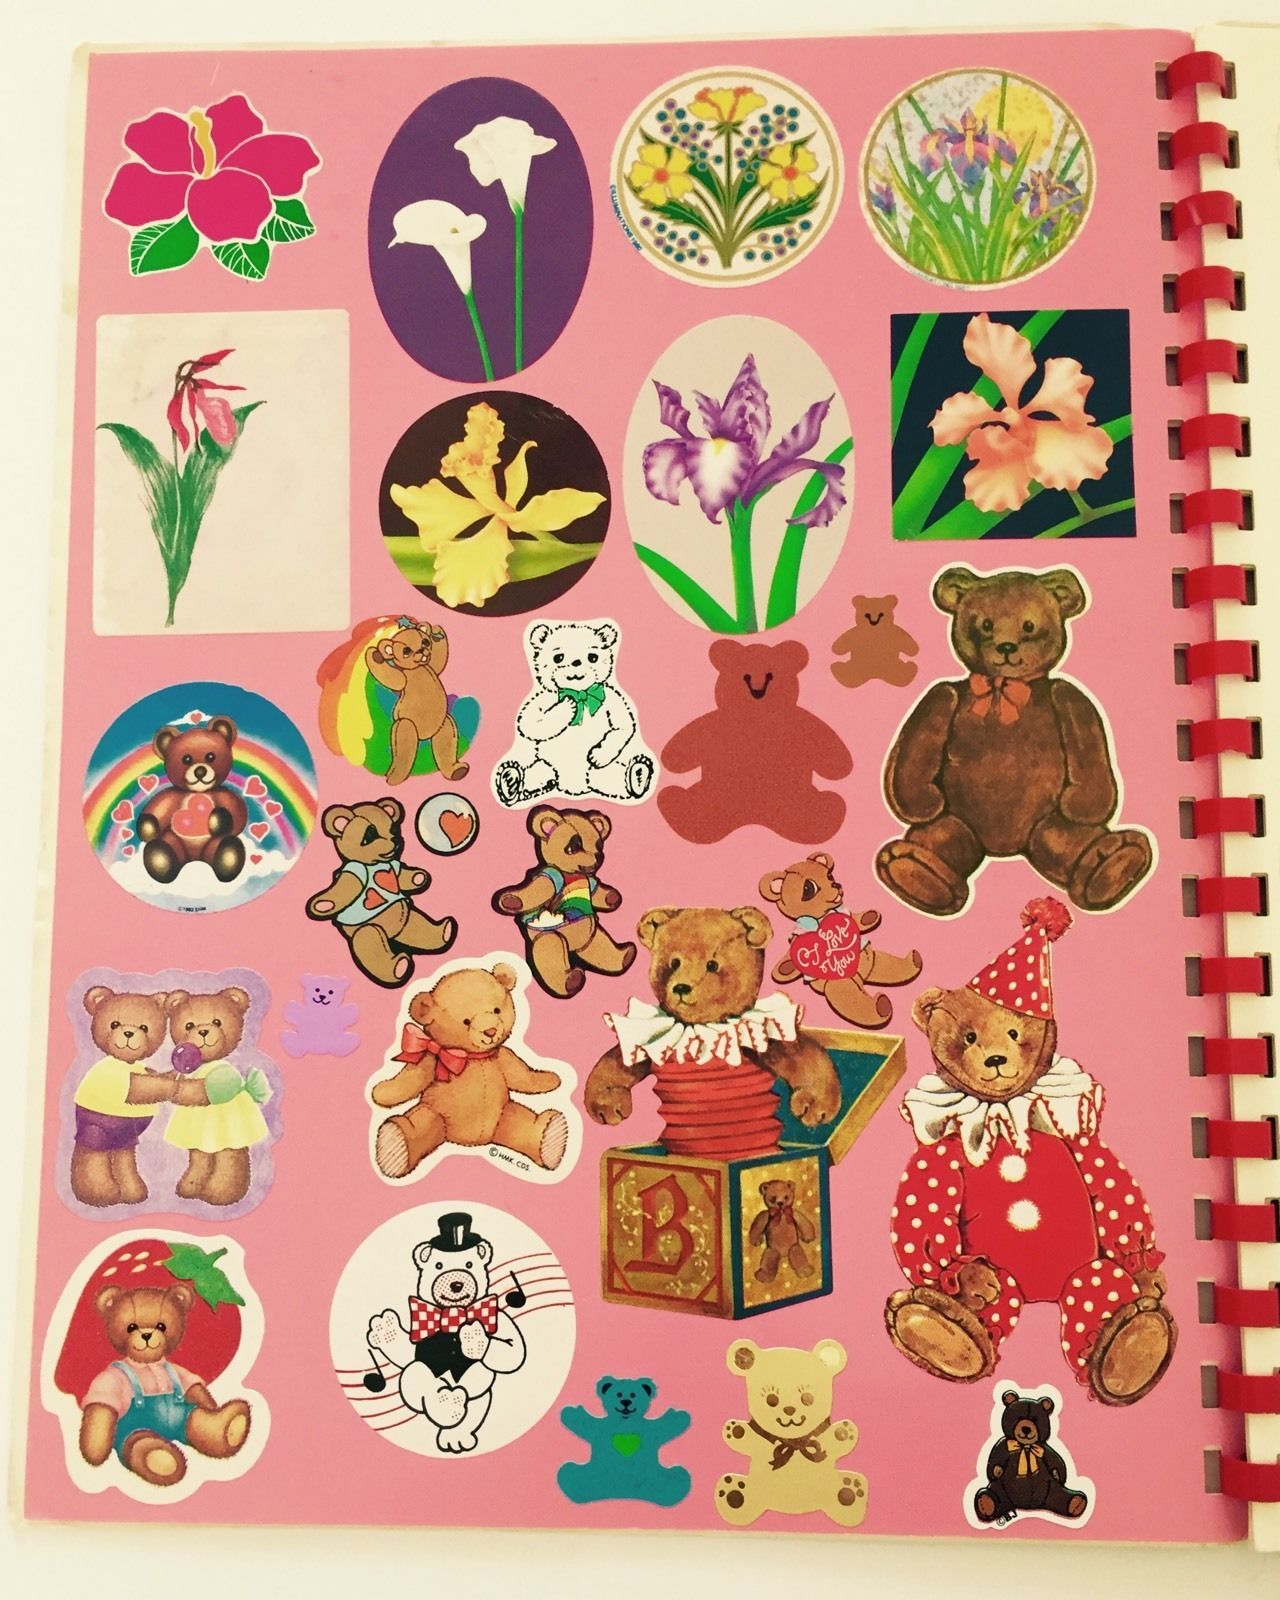 Lisa Frank RARE Vintage 80s Sticker Album With Stickers